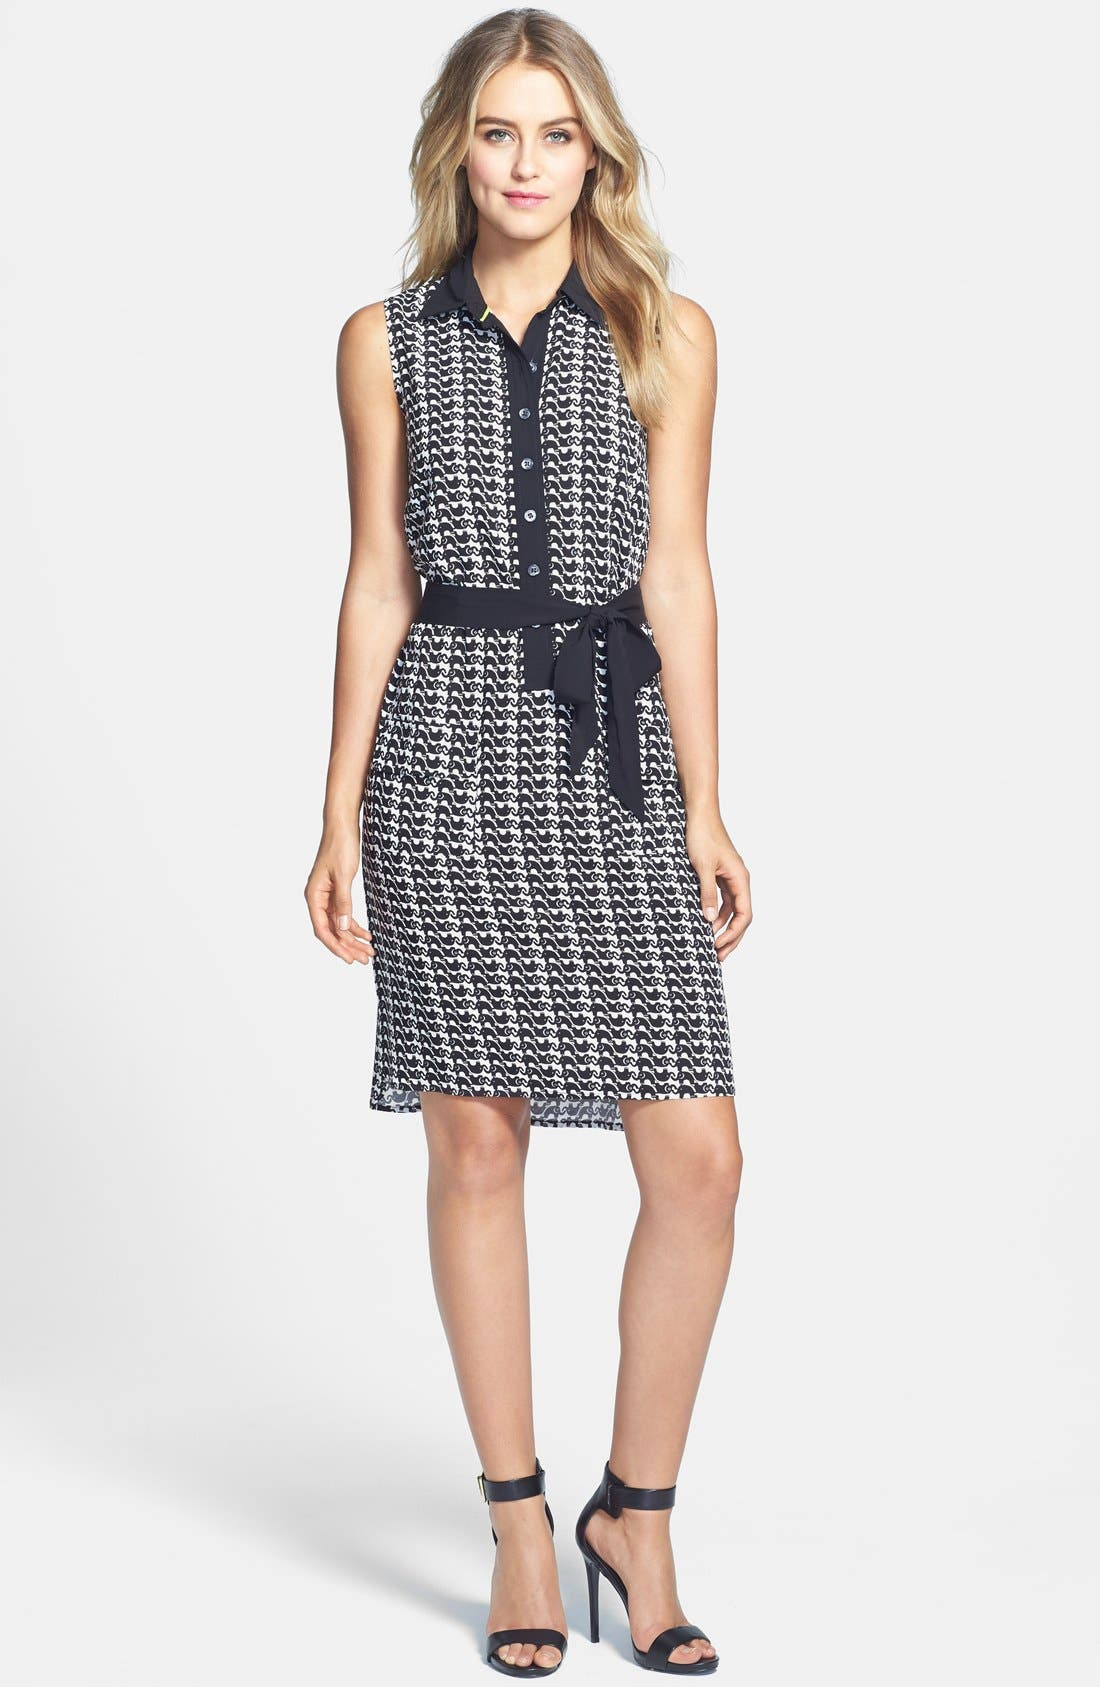 Alternate Image 1 Selected - Two by Vince Camuto Elephant Print Sleeveless Woven Dress